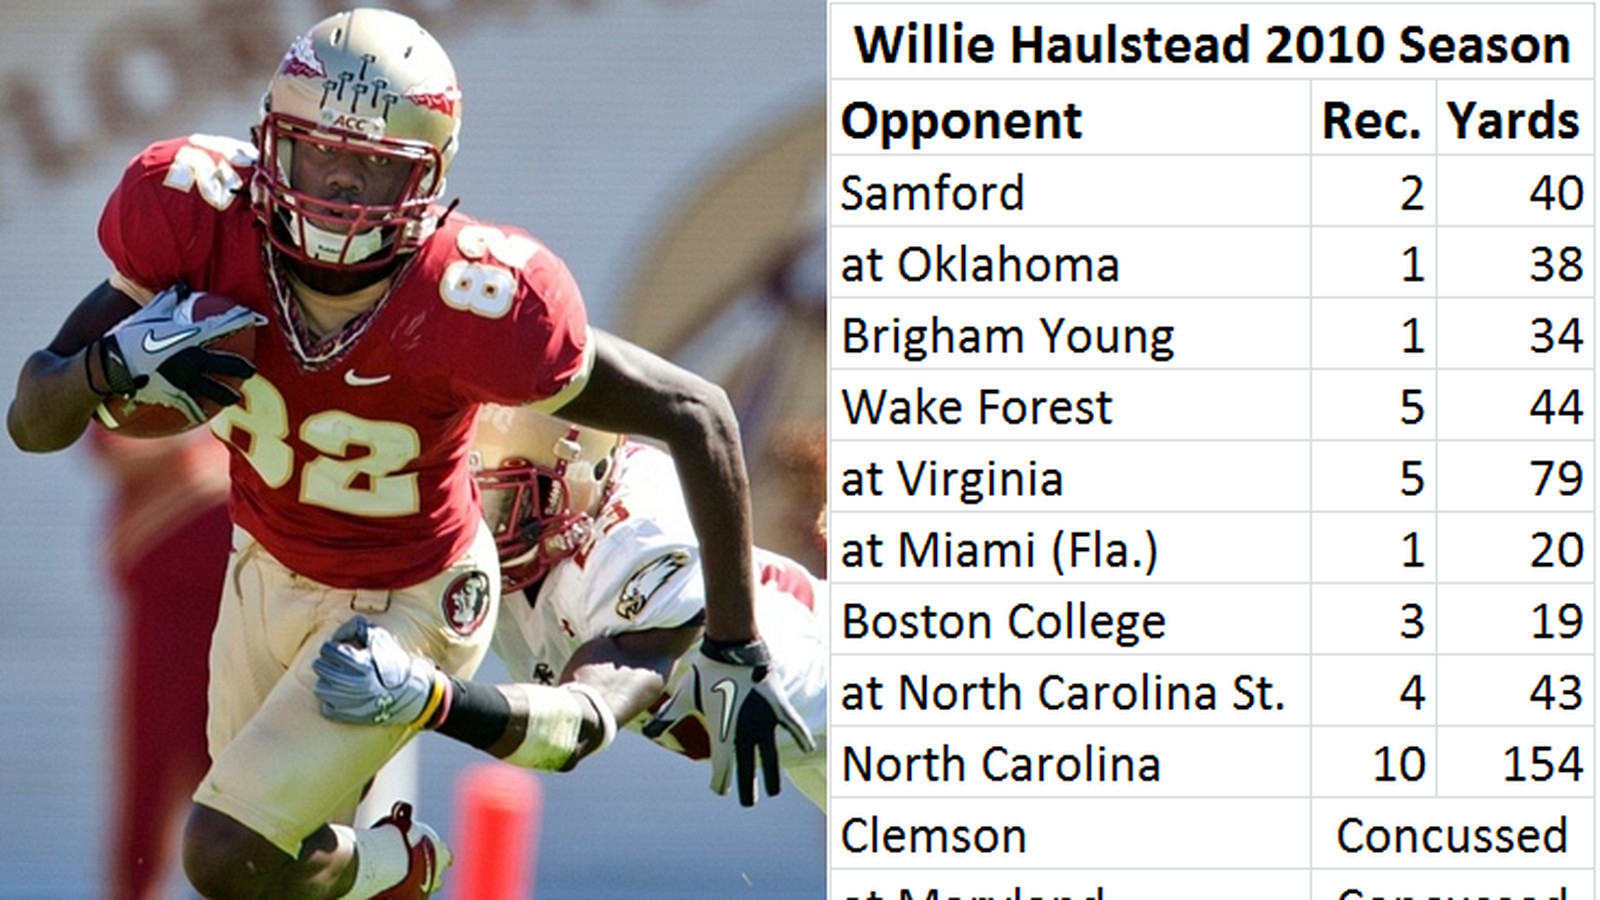 On Willie Haulstead and concussions